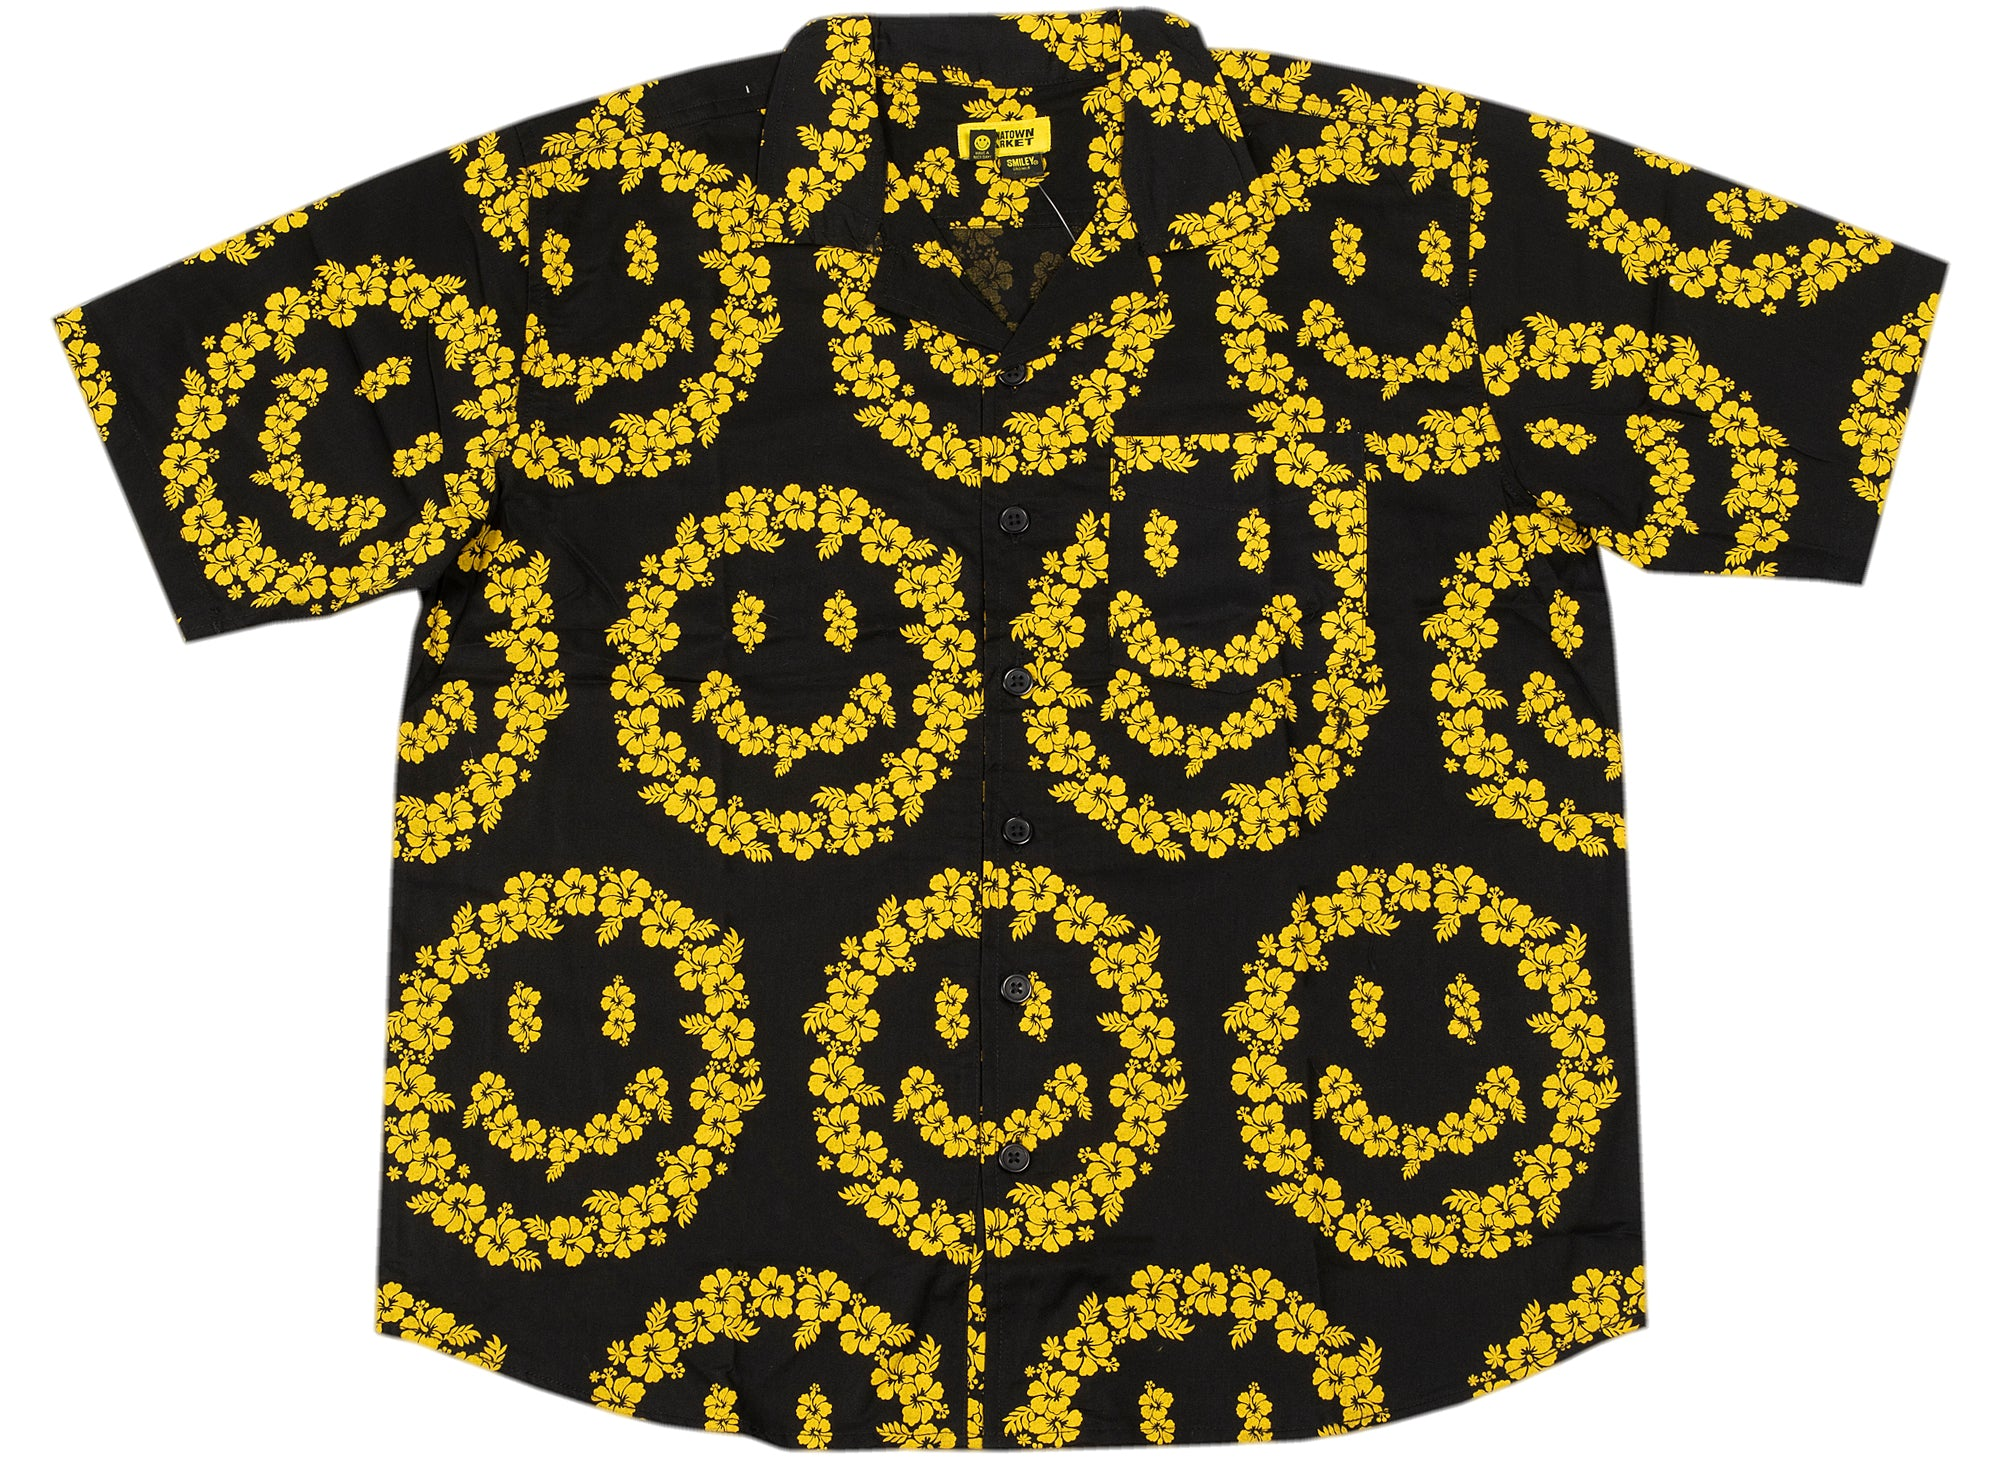 Chinatown Market Smiley Floral Shirt xld